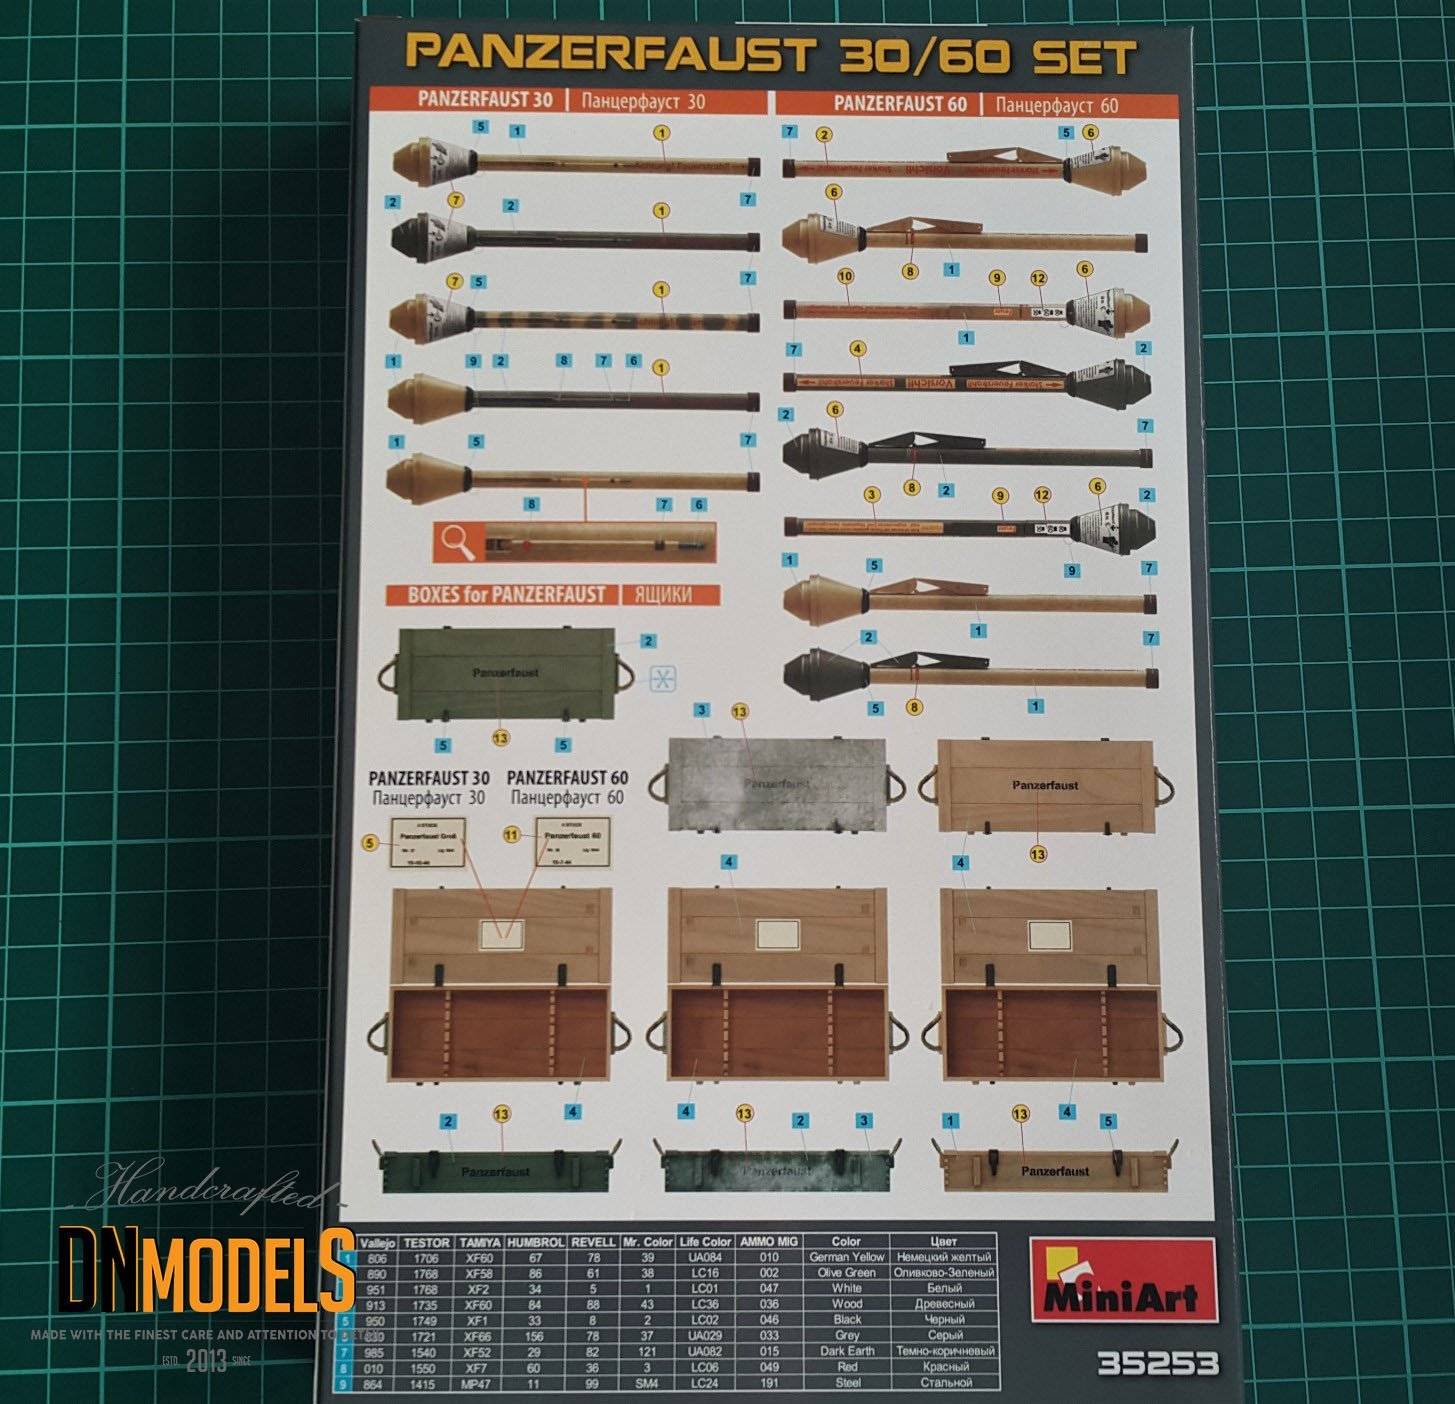 miniart 35253 panzerfaust 30/60 set back